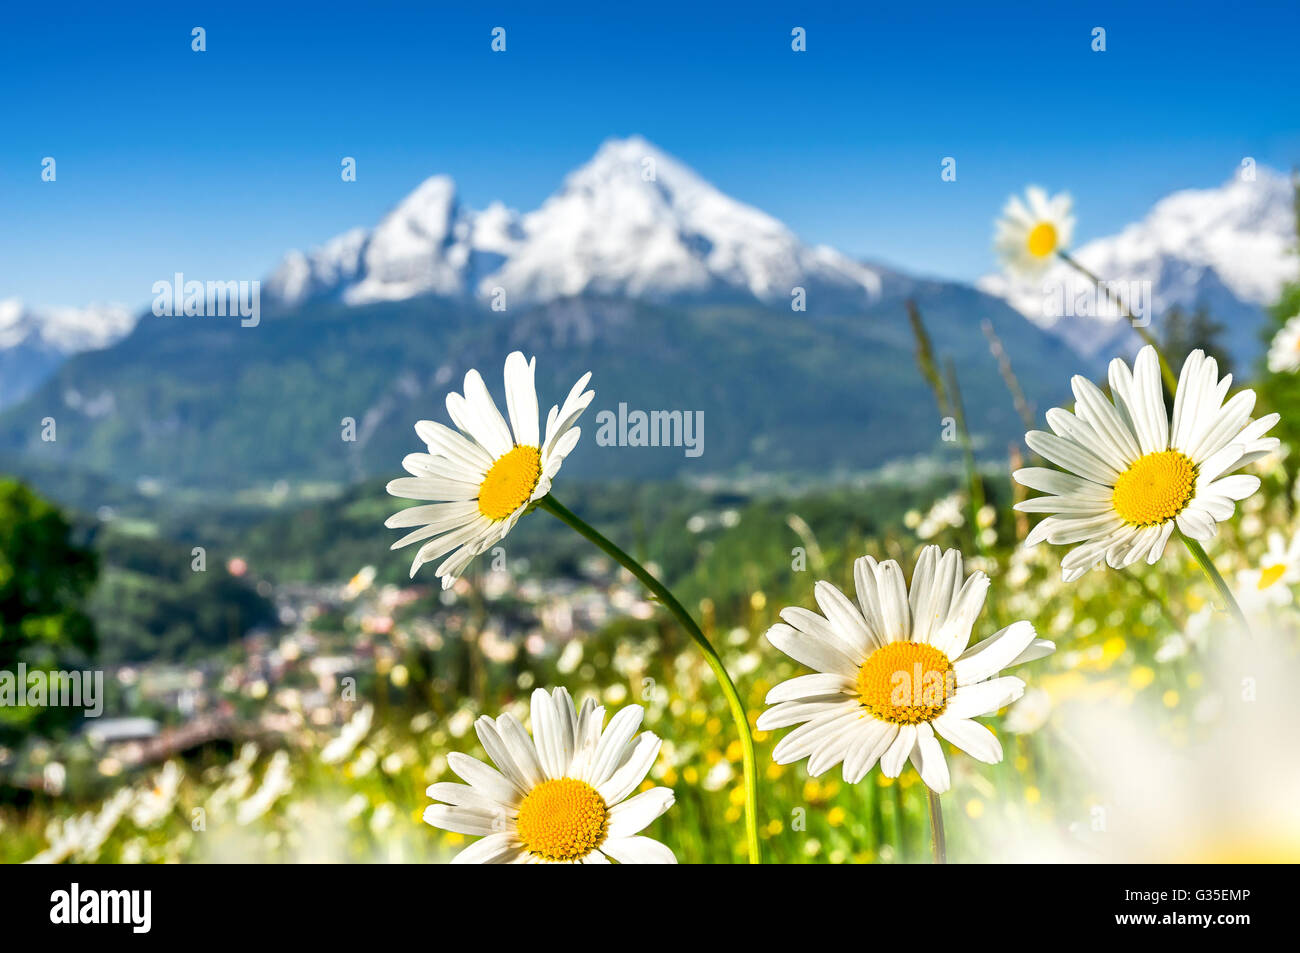 Alpine landscape with beautiful flowers blooming in idyllic meadows alpine landscape with beautiful flowers blooming in idyllic meadows and snowcapped mountain tops on a sunny day in spring izmirmasajfo